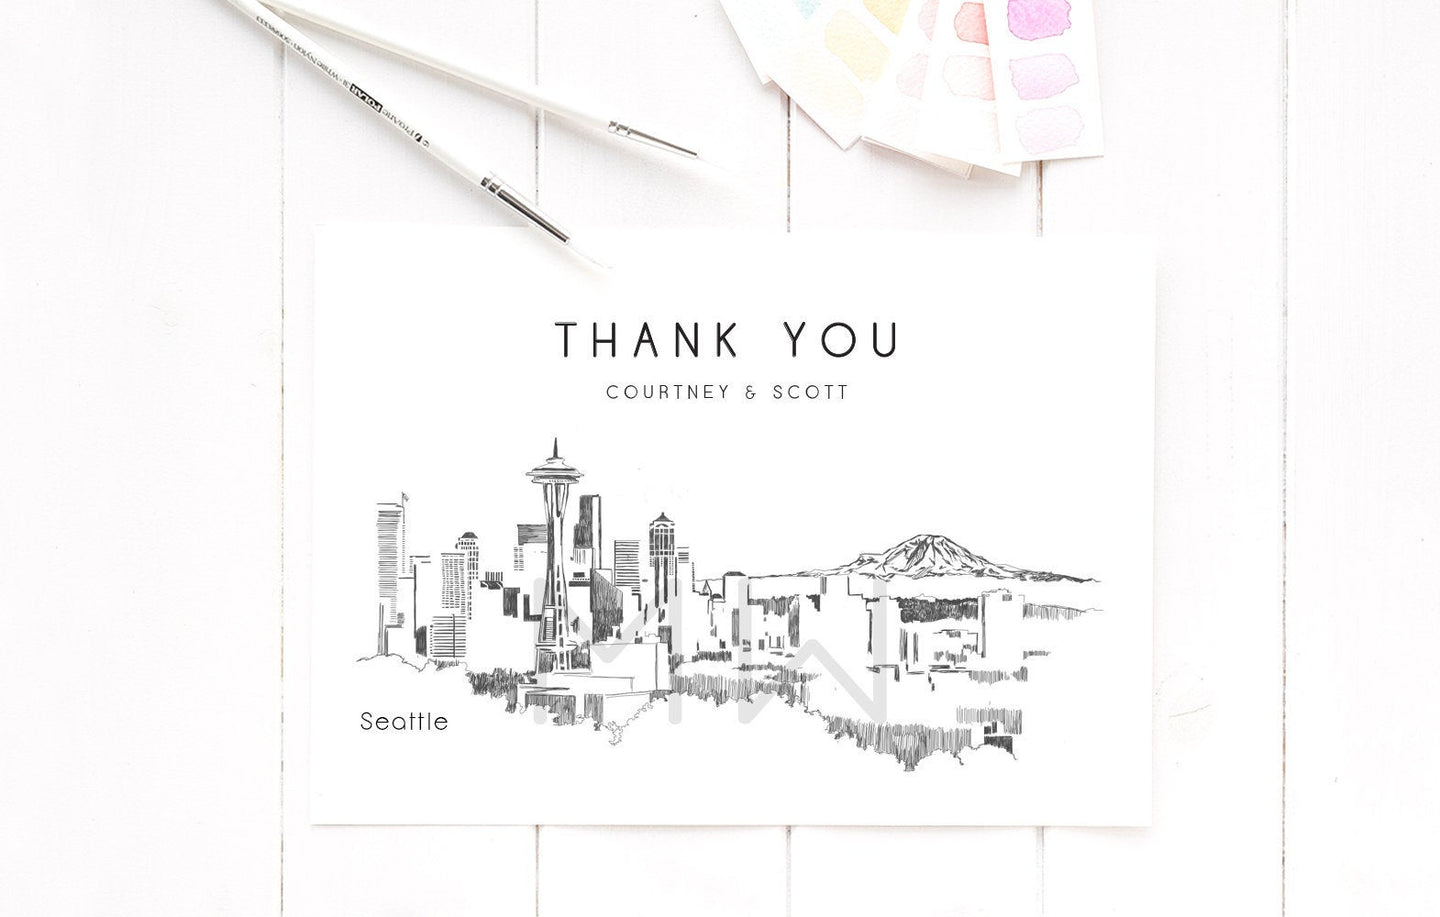 Seattle Skyline Thank You Cards, Personal Note Cards, Bridal Shower Thank you Card Set, Corporate Thank you Cards (set of 25 cards)